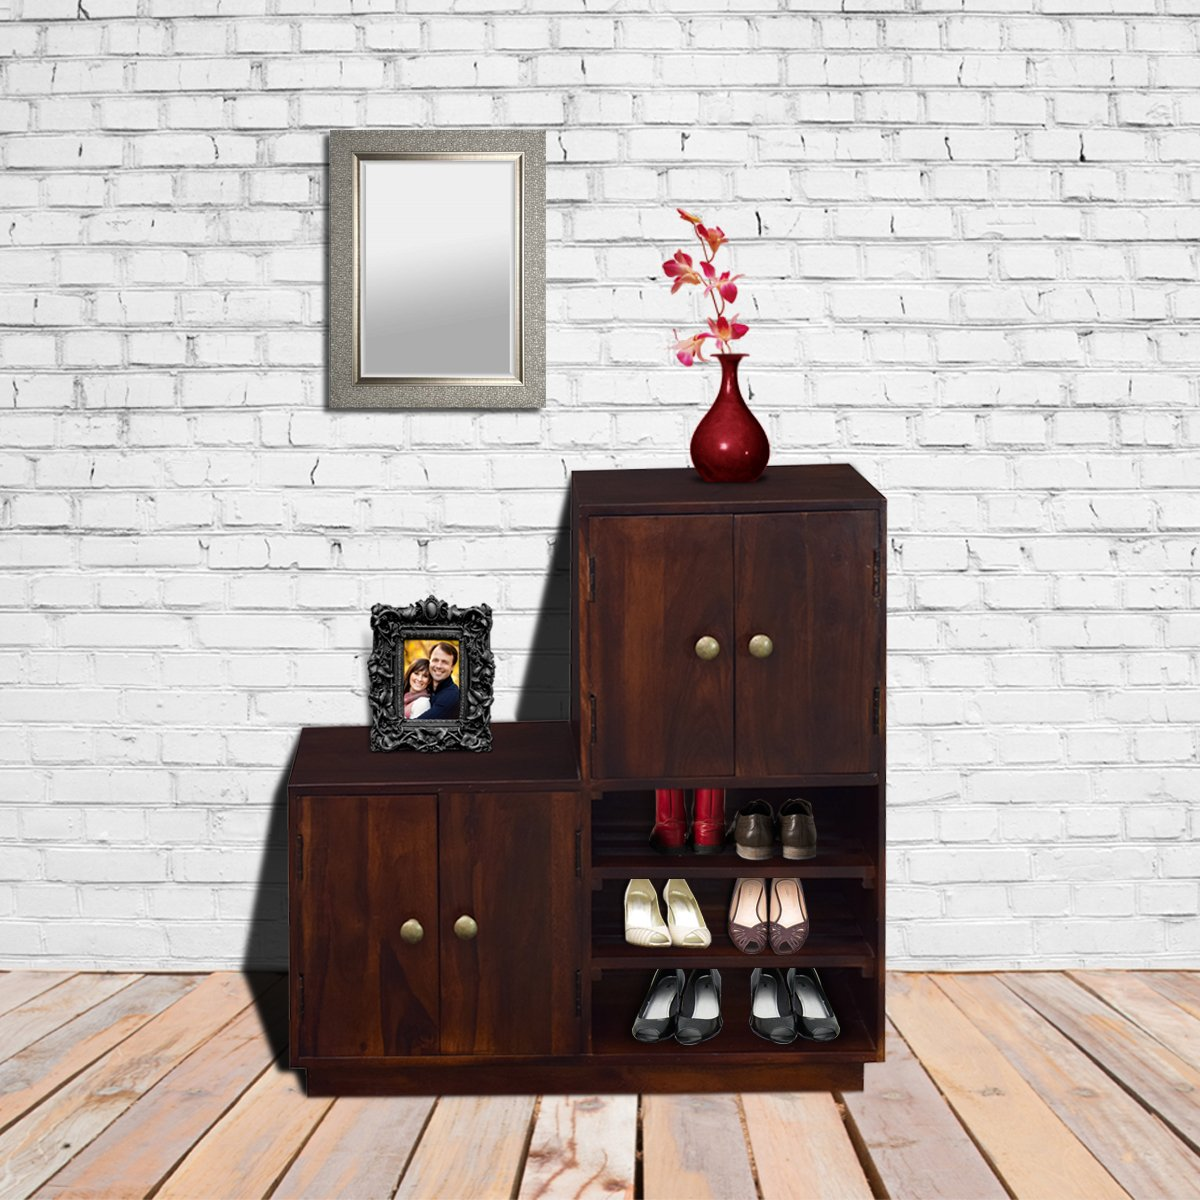 Zolmil Large Shoe Rack with Seatingshoe racks and cabinet	 in Mahogany Finish